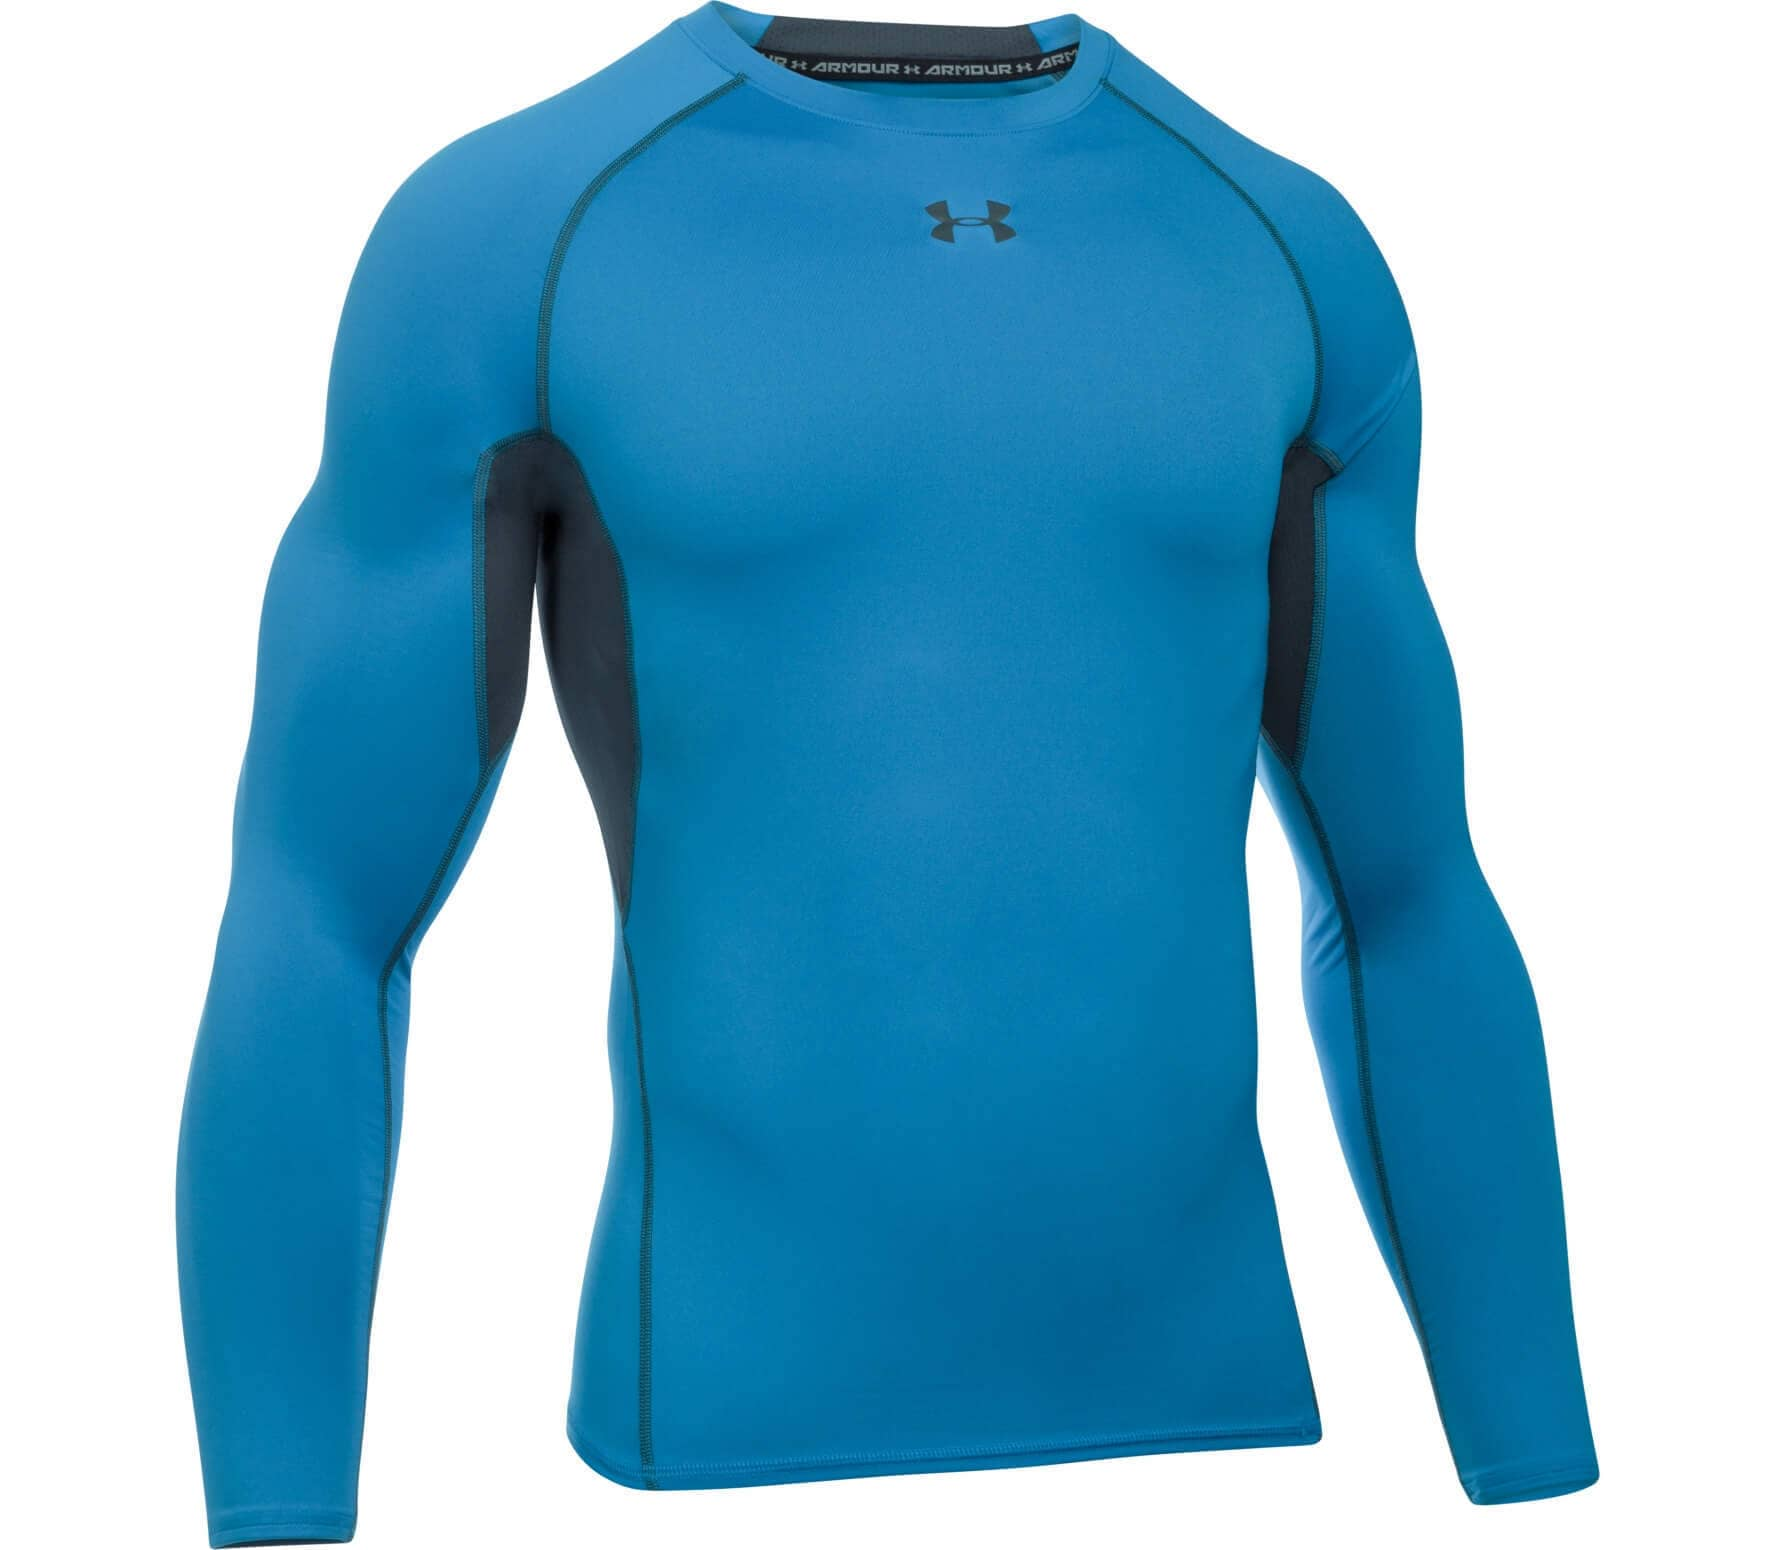 Daftar Harga Ua Heat Gear Armour Long Sleeve Top Update 2018 Atteenahijab Atiqa Raudha Ungu Tua Under Heatgear Sleeved Mens Compression Blue Grey